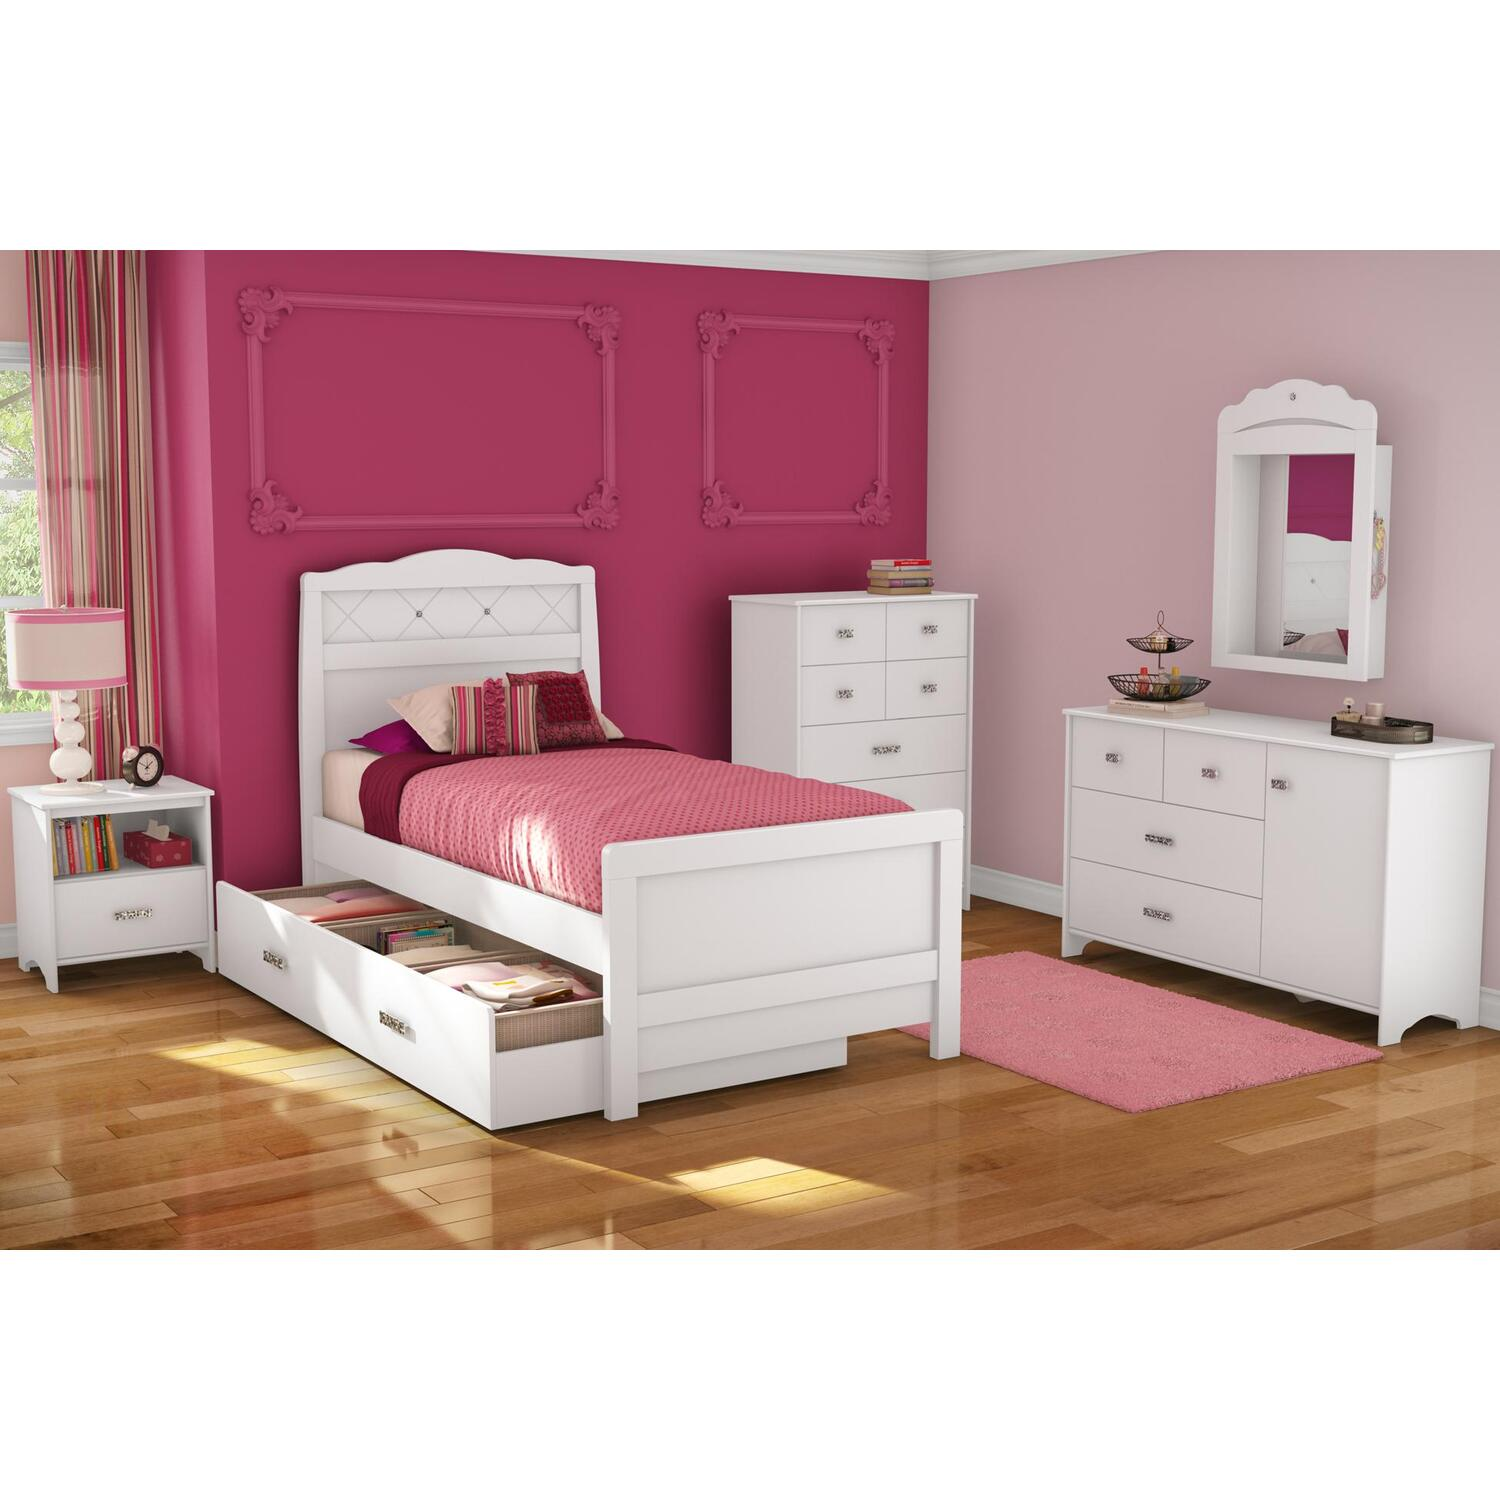 tiara twin w trundle 6 piece bedroom set by oj commerce